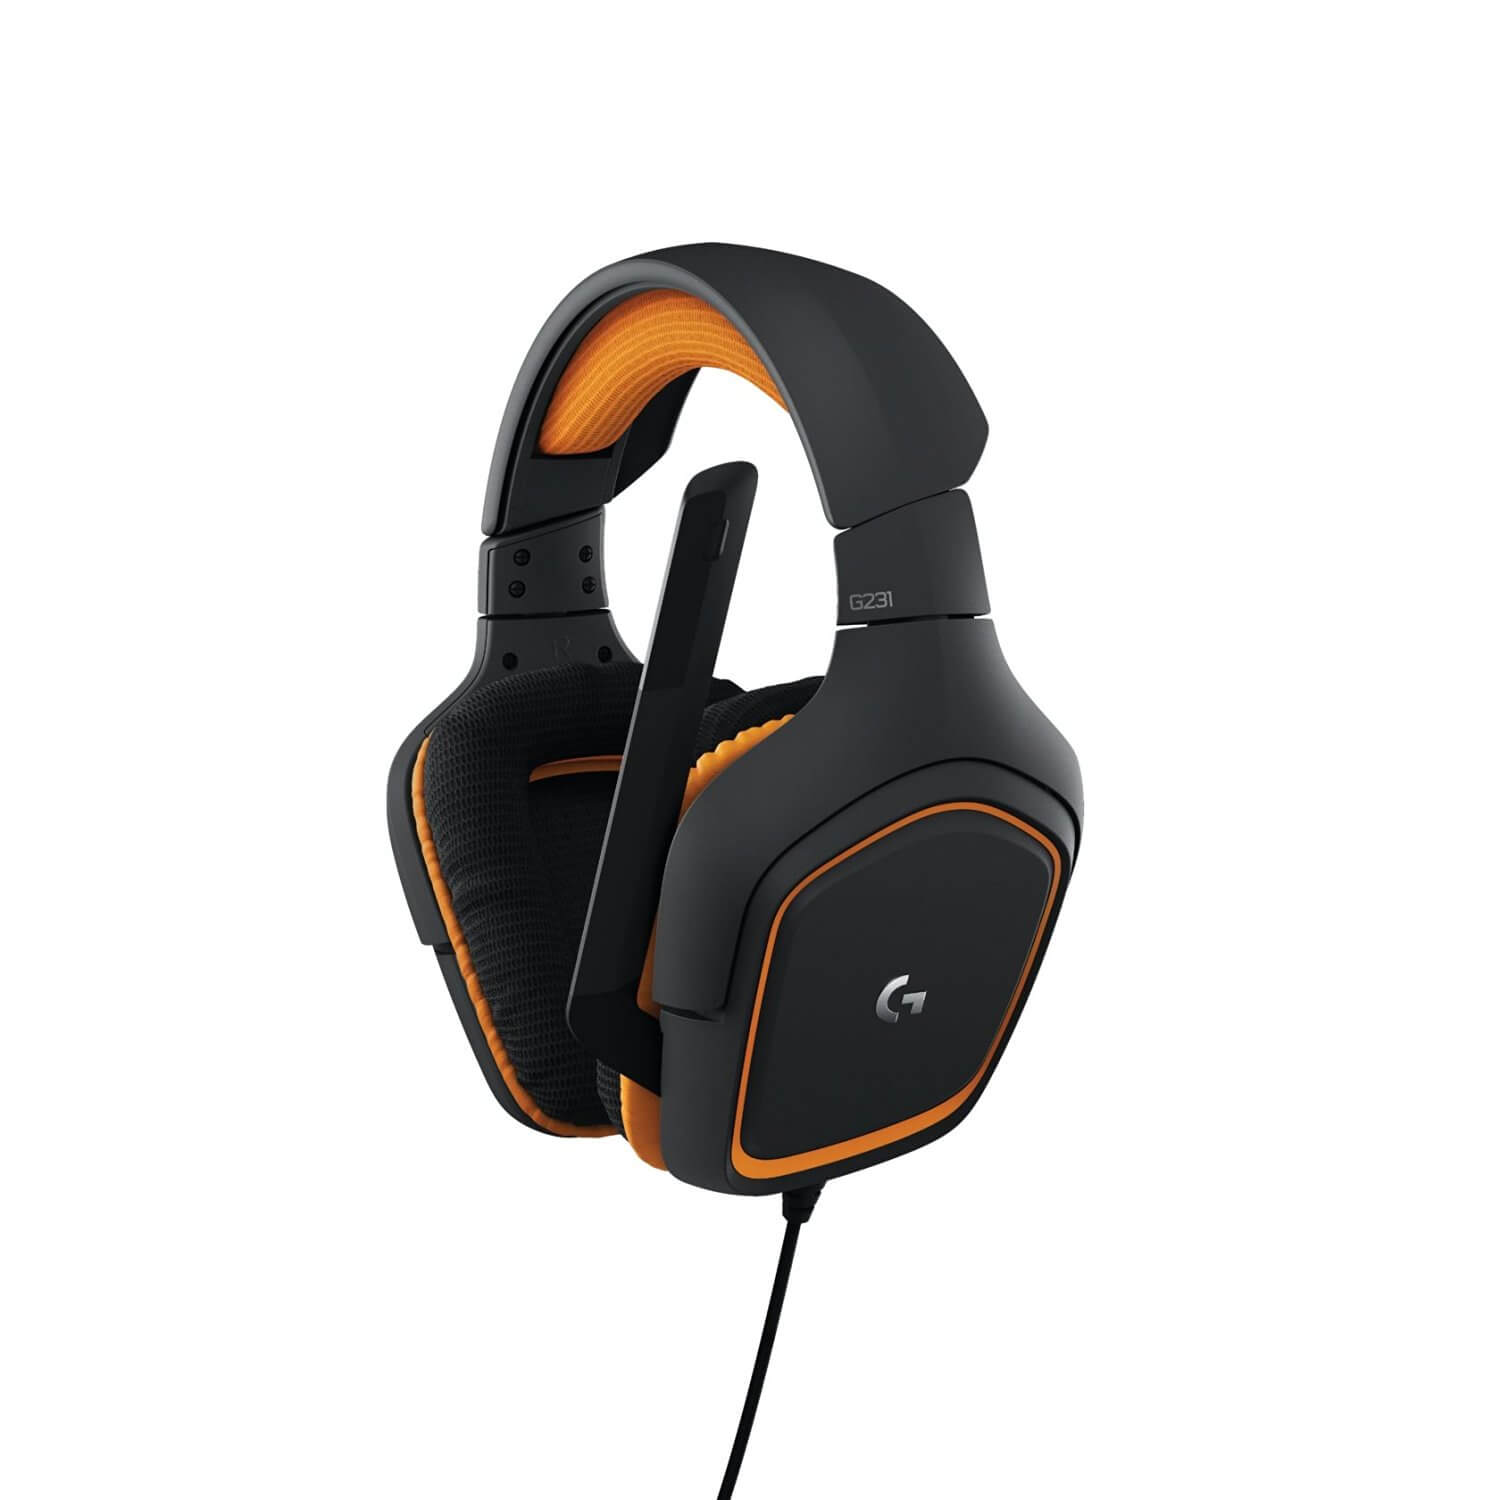 Logitech-G231-Prodigy-Gaming-Headset